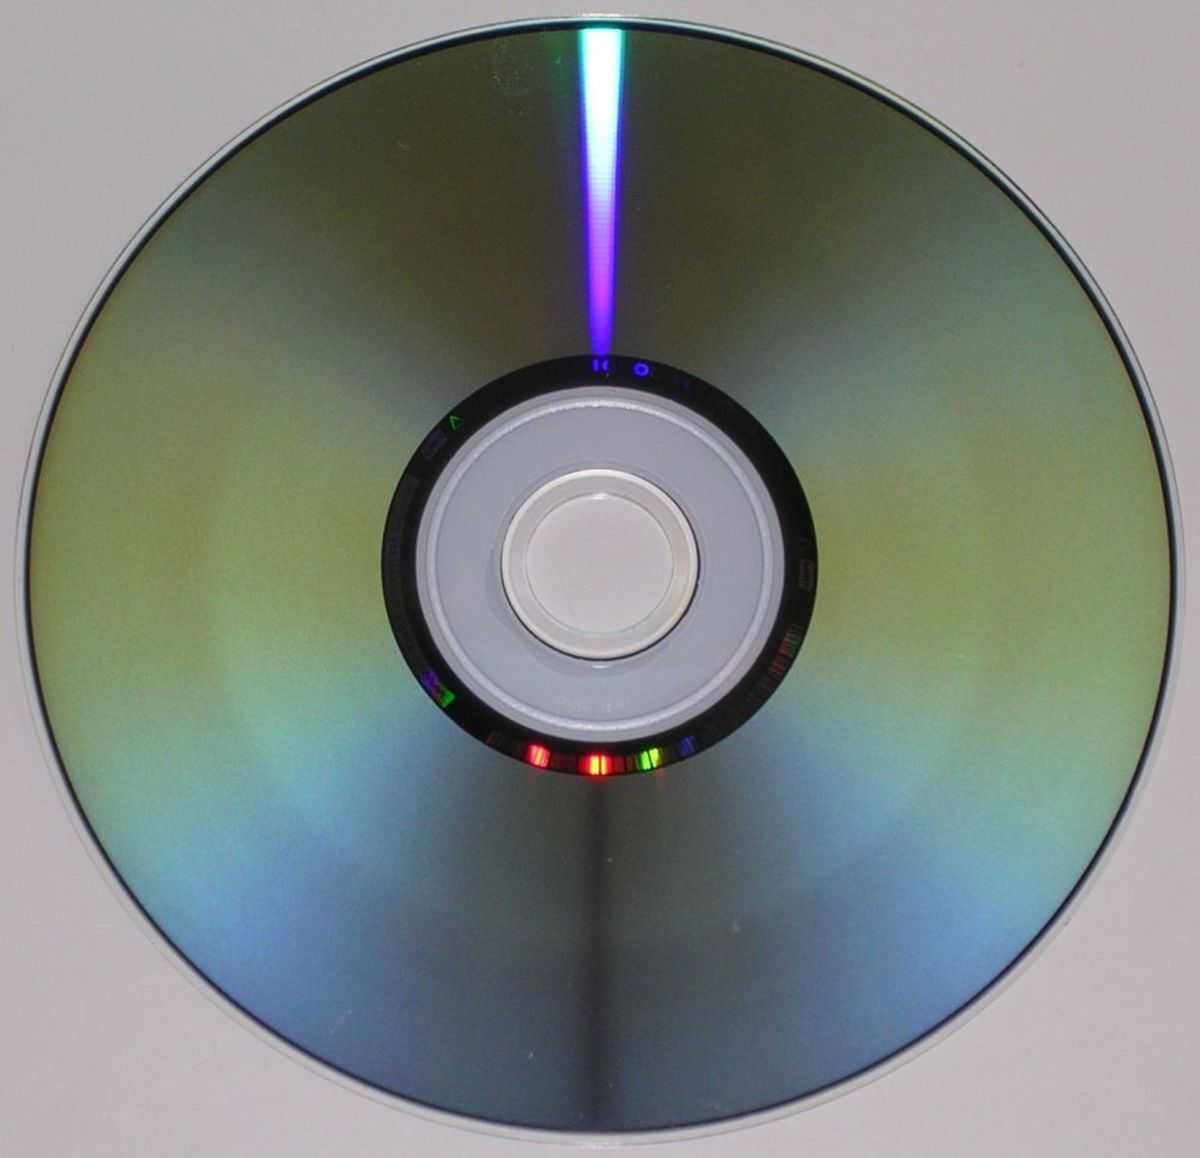 How to take care of your DVD collection